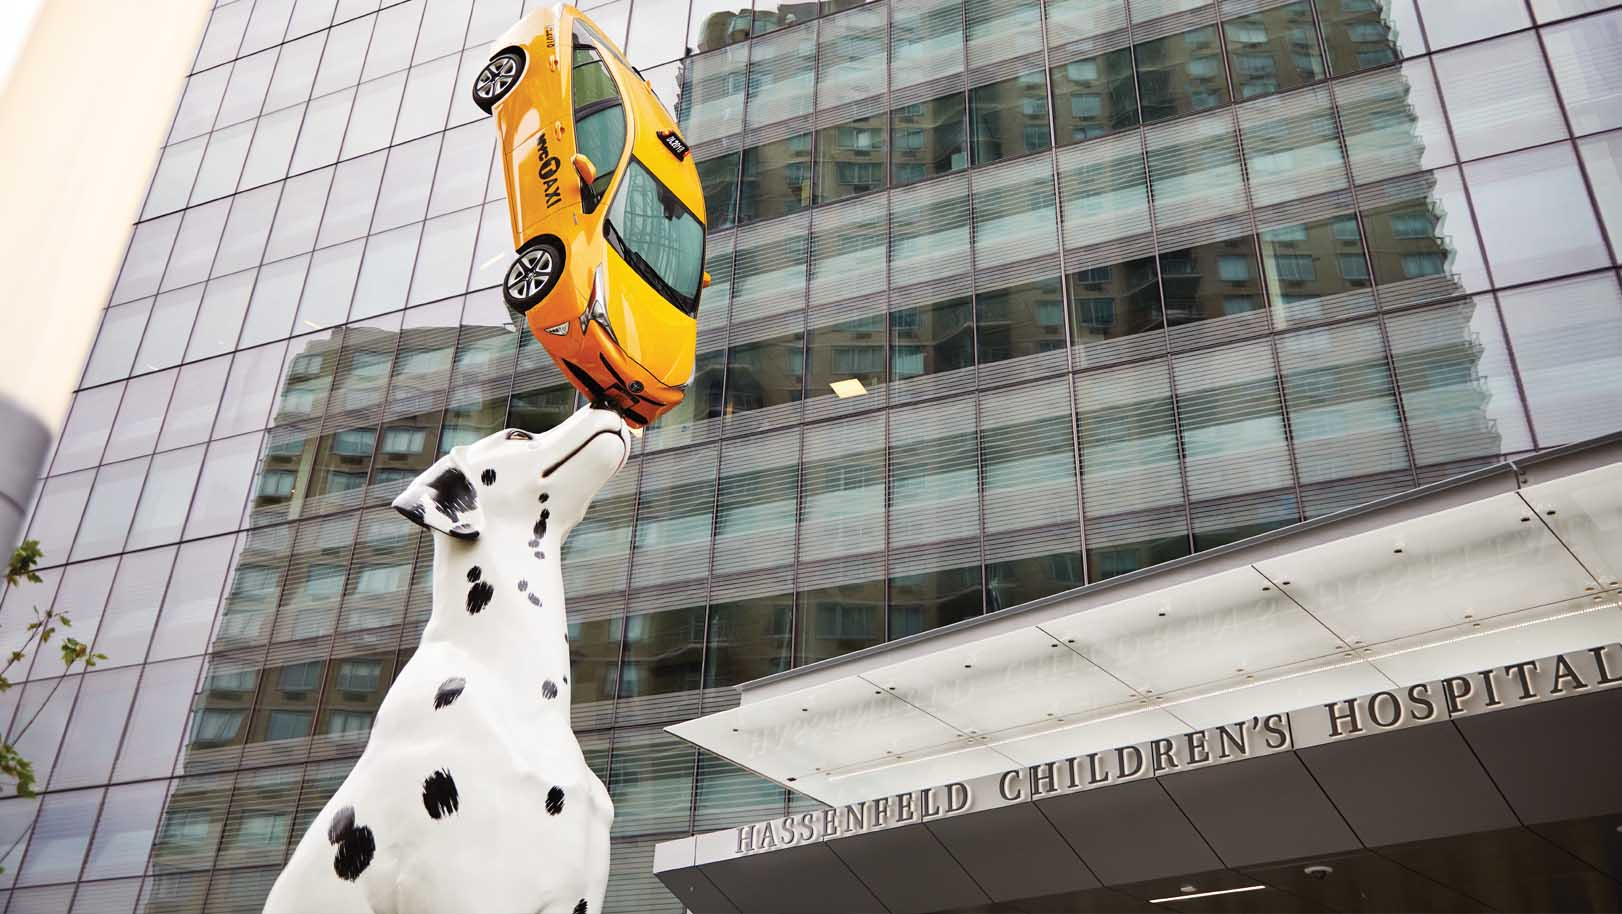 Spot is hardly your typical therapy dog. This Dalmatian pup stands 38 feet tall and balances an actual New York City taxicab on her nose. Spot was commissioned by NYU Langone's Art Program from award-winning artist Donald Lipski.